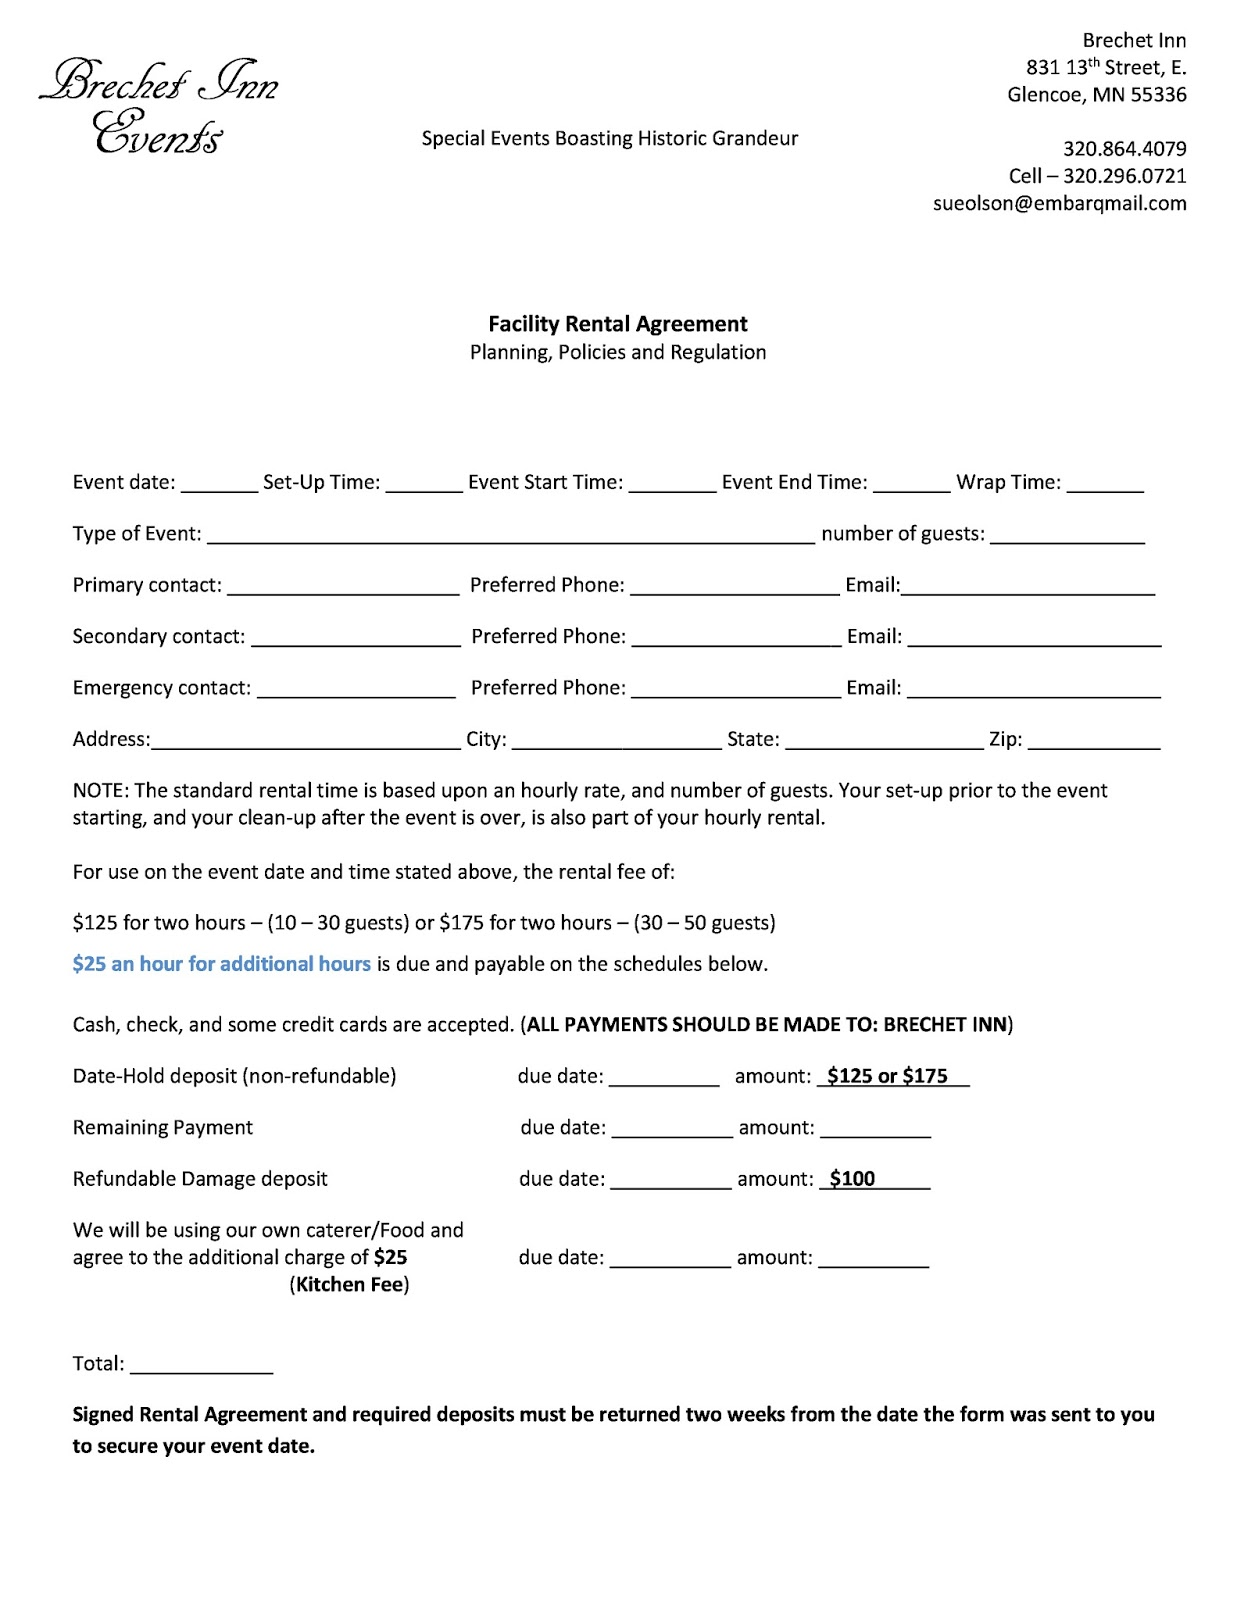 Event Rental Agreement Form